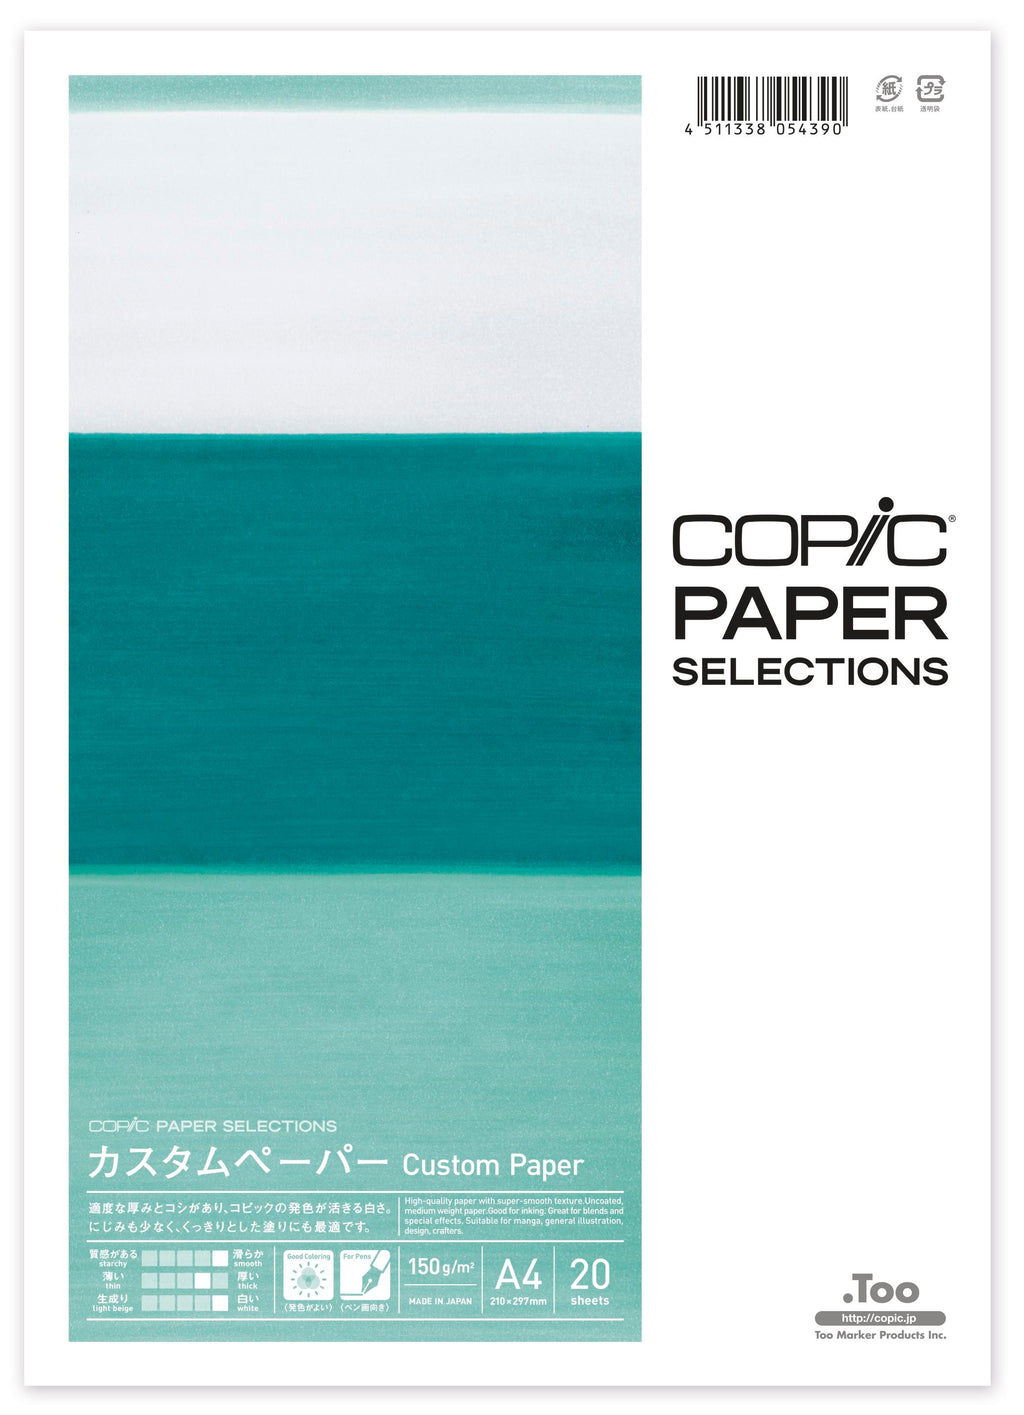 Copic Paper Selections - Custom Paper - 20 Blatt - A4 - 150g/qm